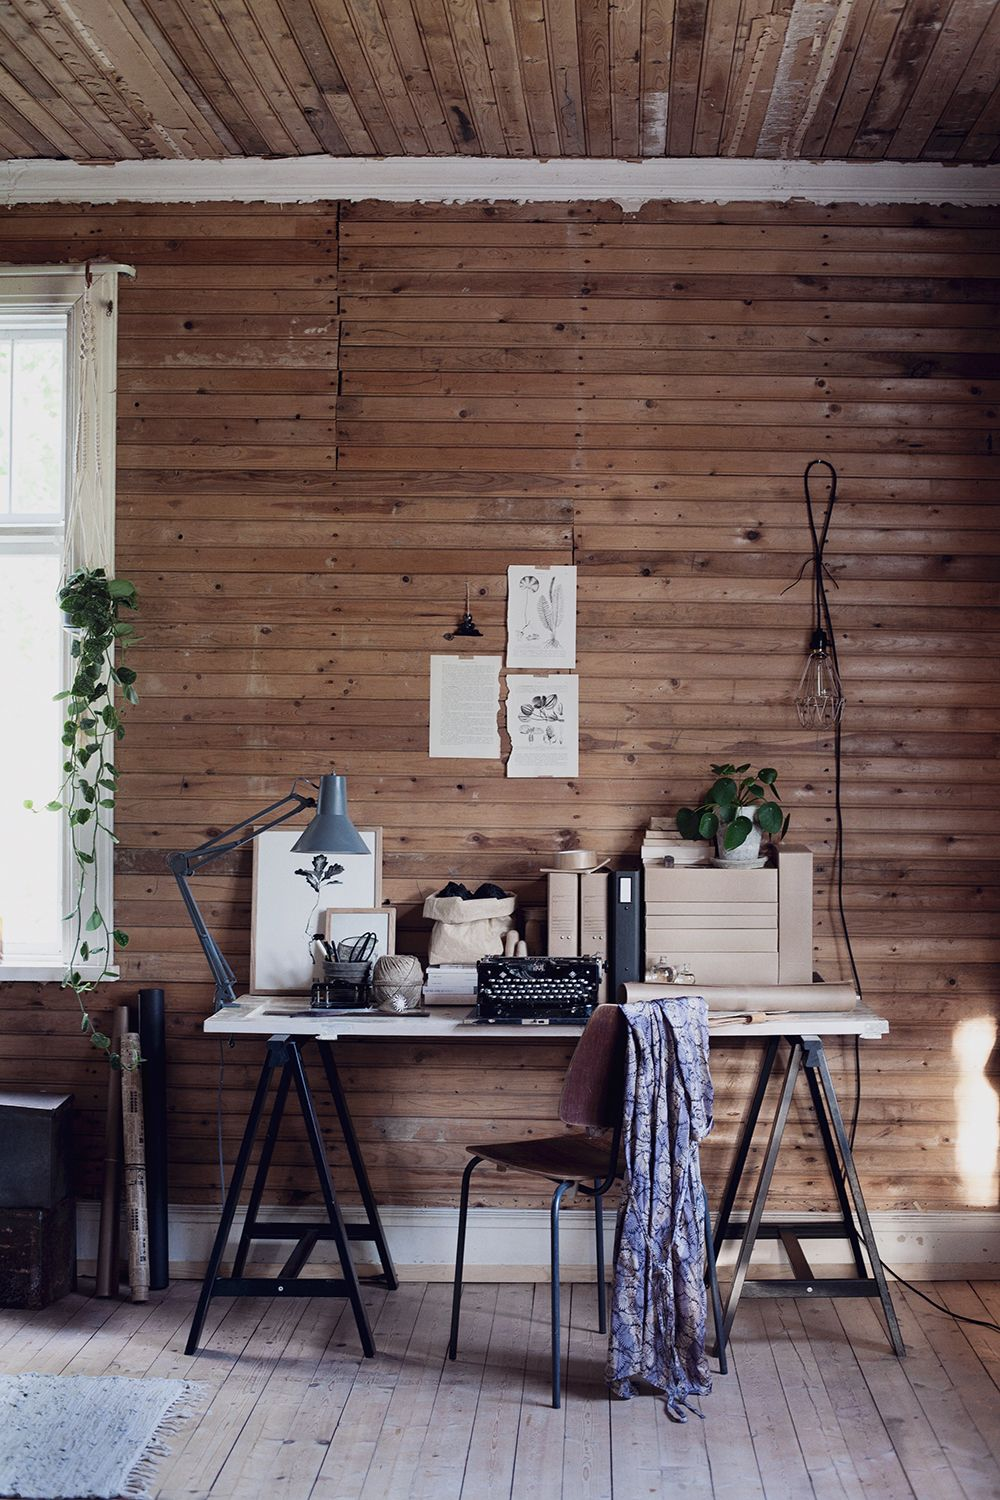 Creative working space copyright 2016 Anna Malmberg 1